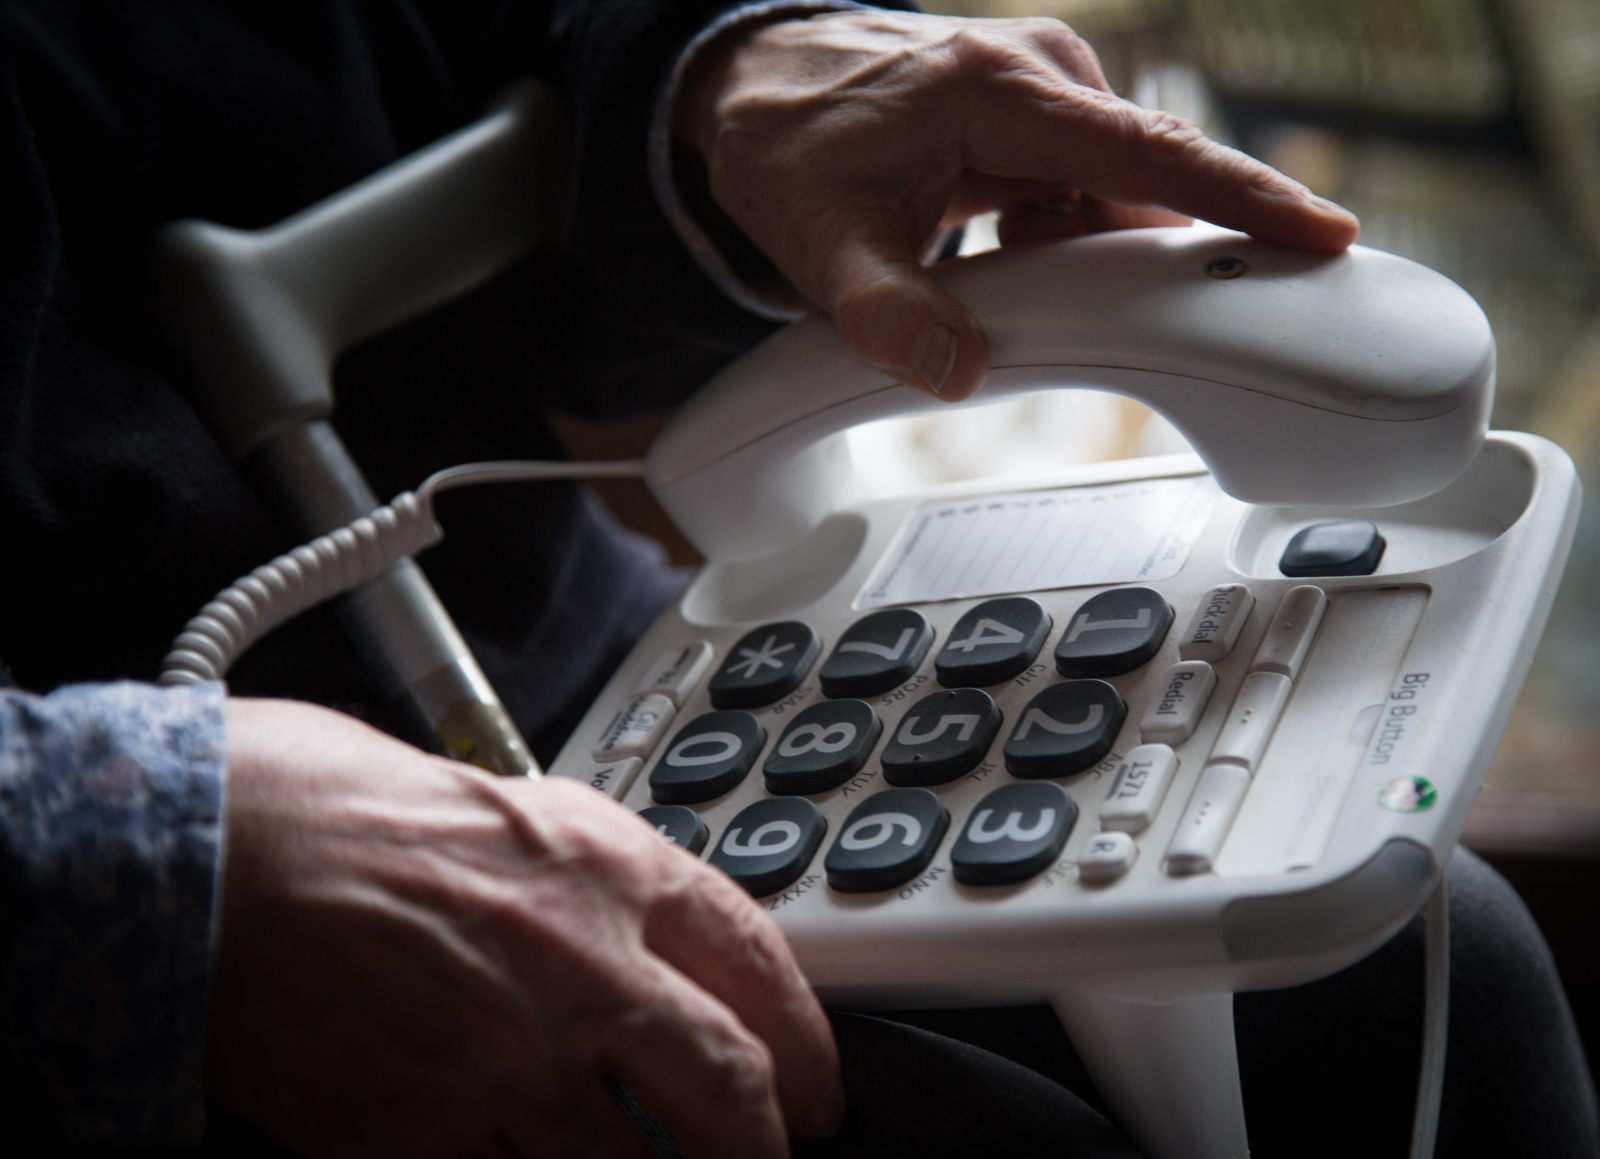 how to stop scam phone calls uk